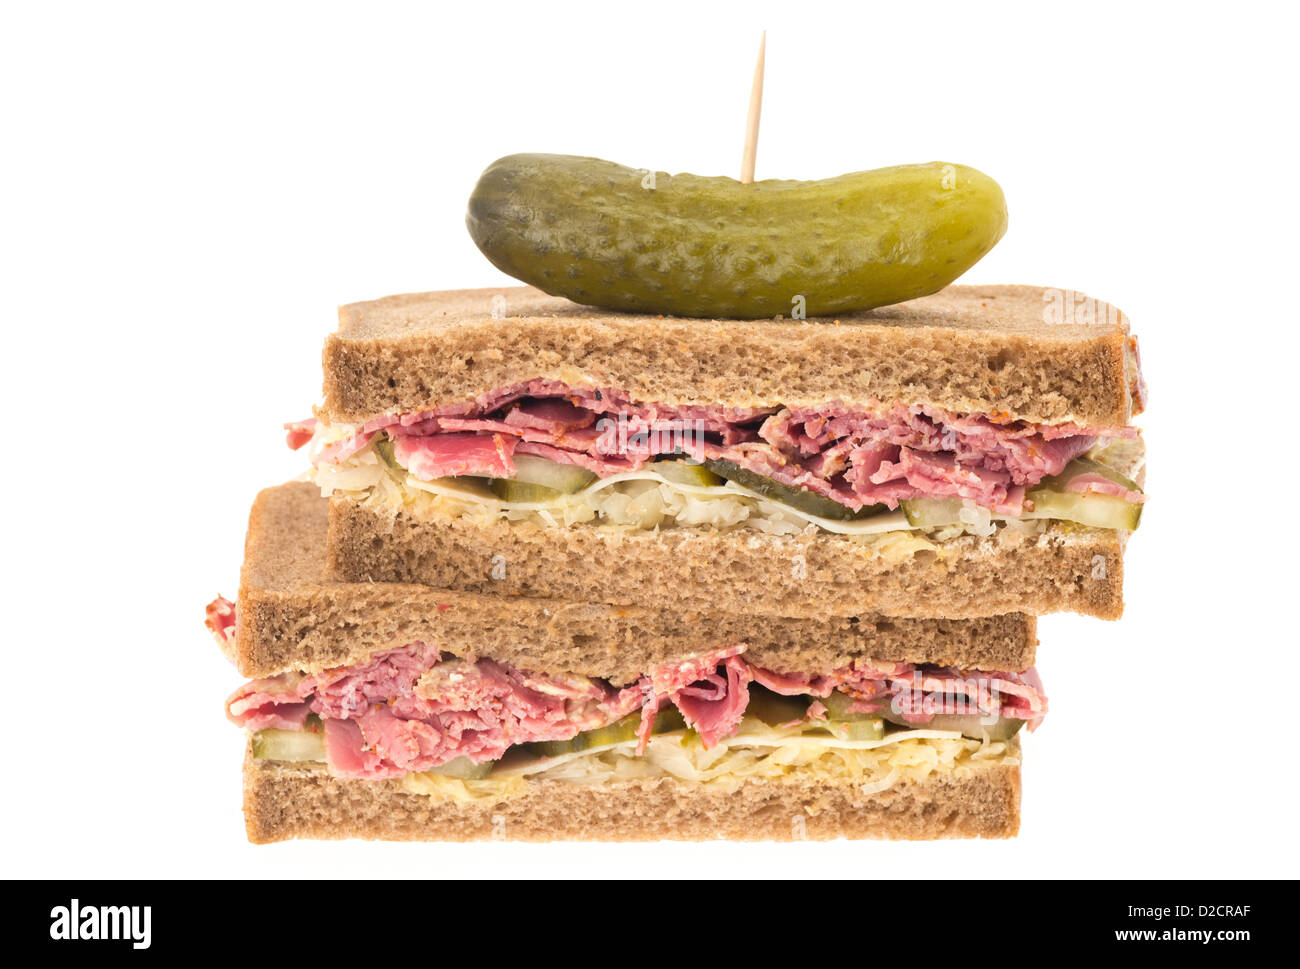 A New York deli pastrami sandwich on rye bread. This sandwich has slices of pastrami, grated Emmental cheese, gherkin, - Stock Image